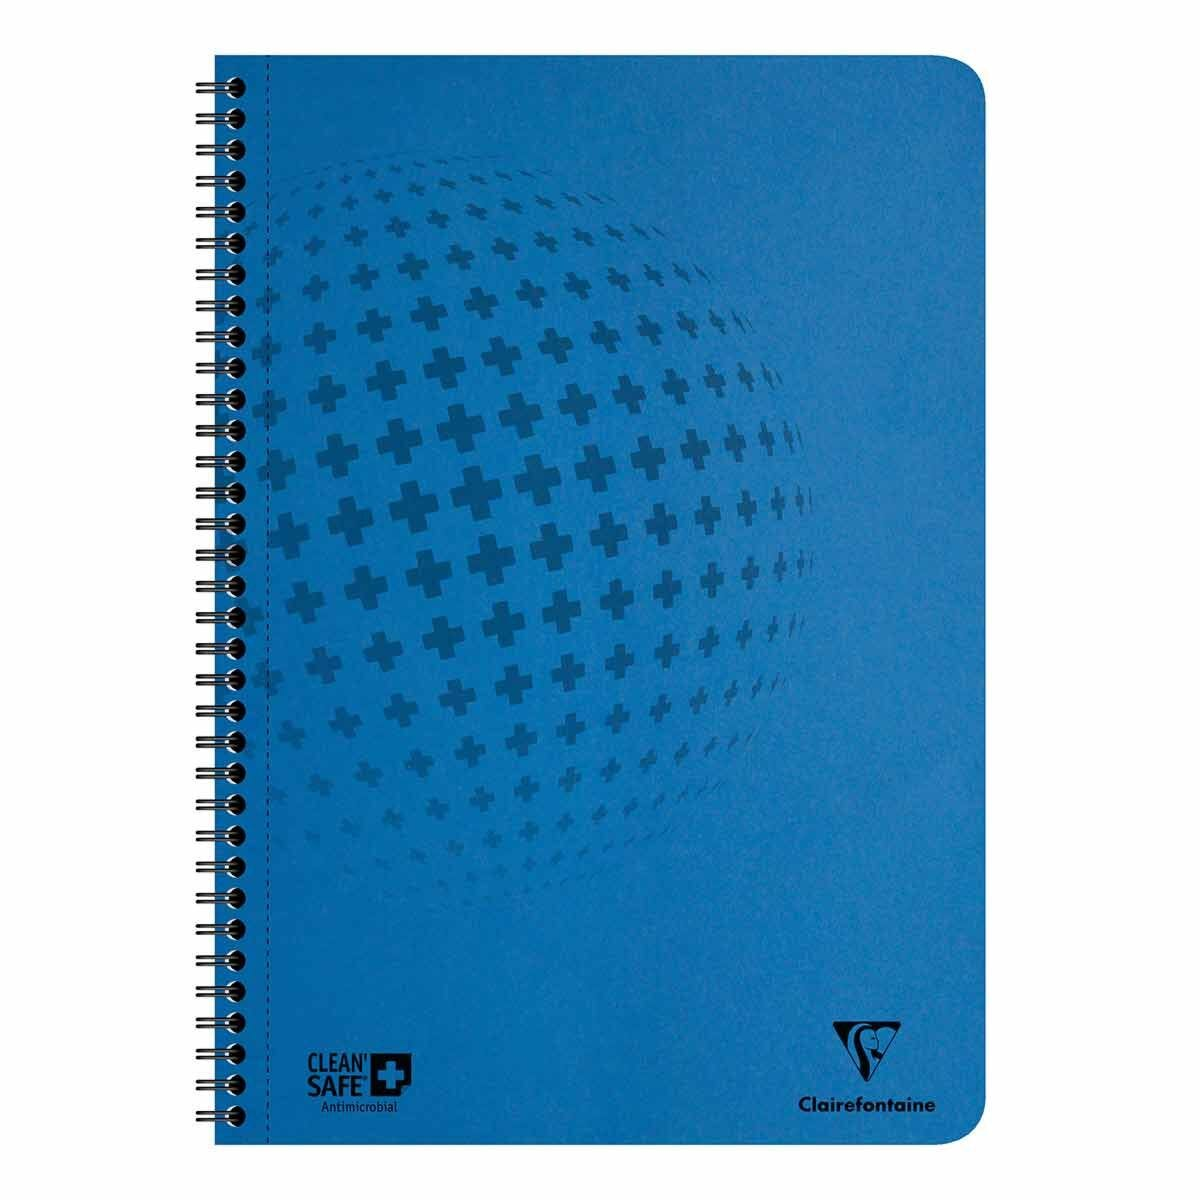 Clairefontaine Clean Safe A4 Notebook 120 Pages 90 GSM